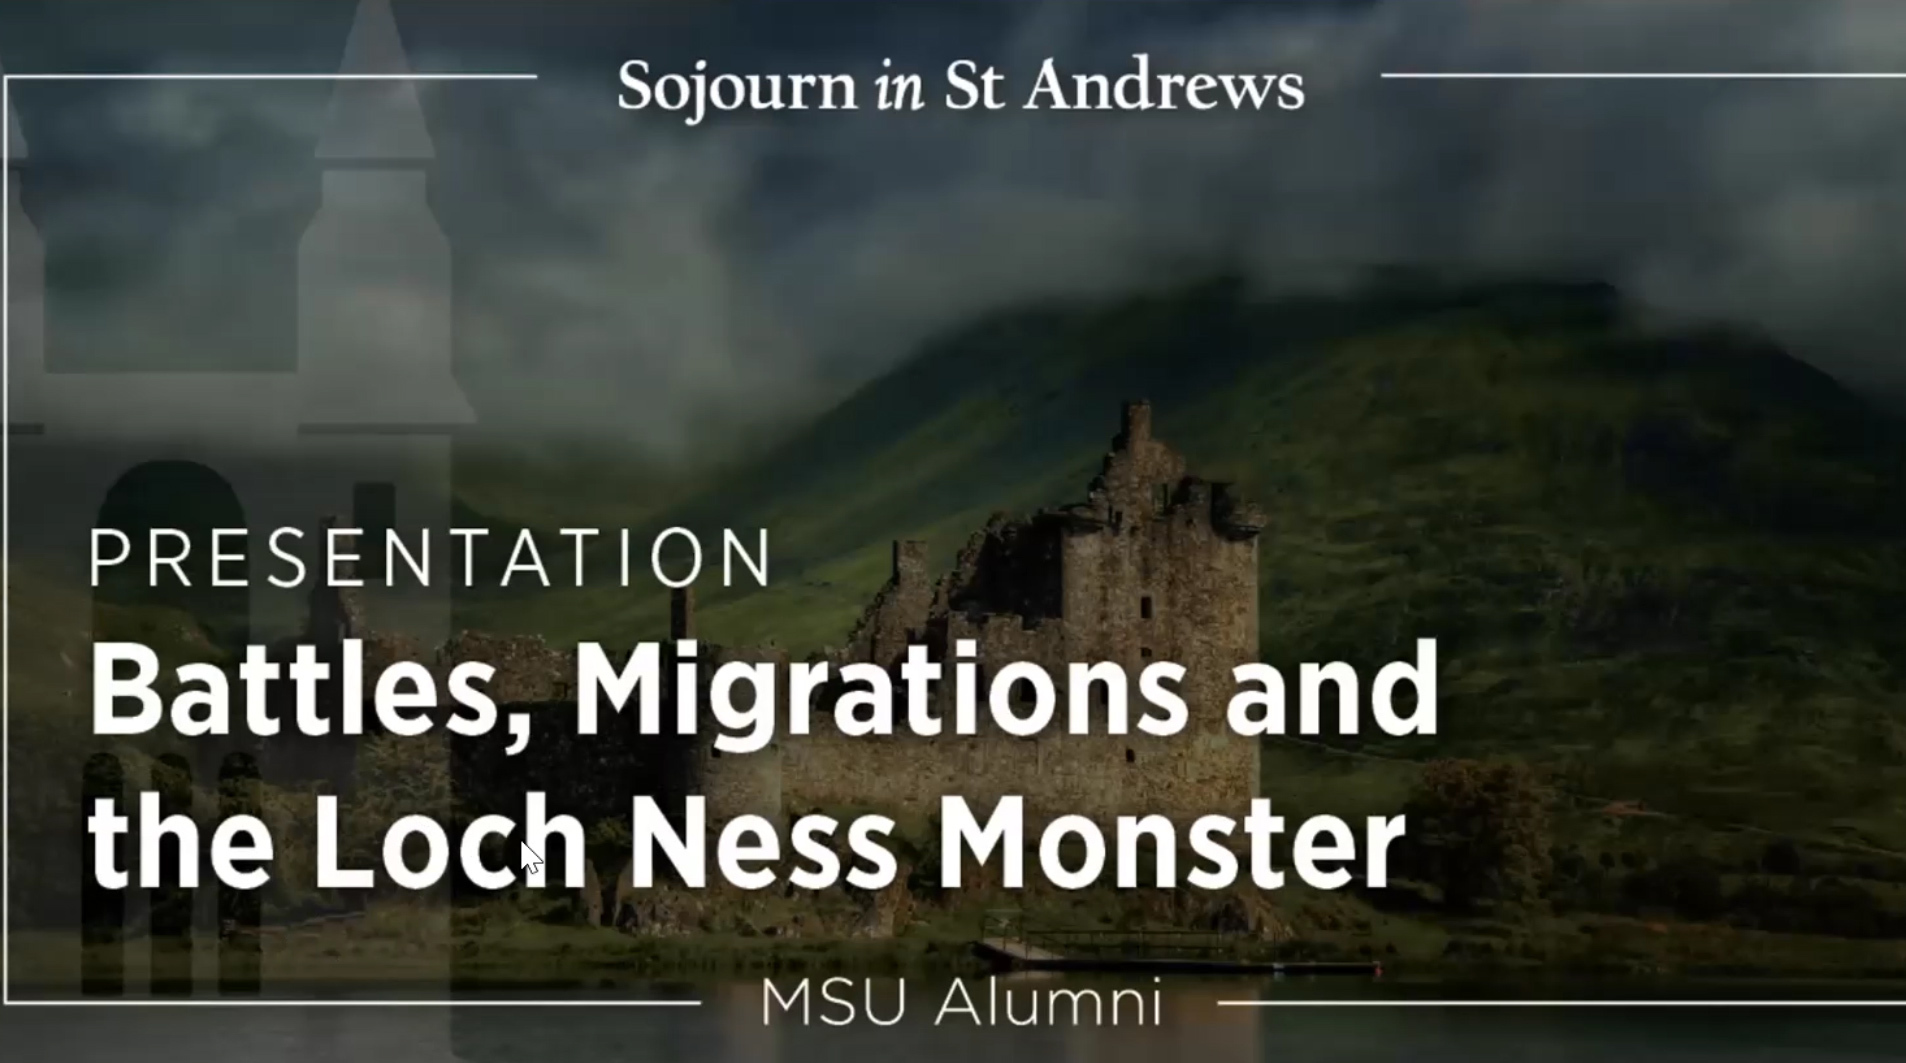 livestream cover image for Battles, Migrations and the Loch Ness Monster: An Introduction to Scottish History and Culture